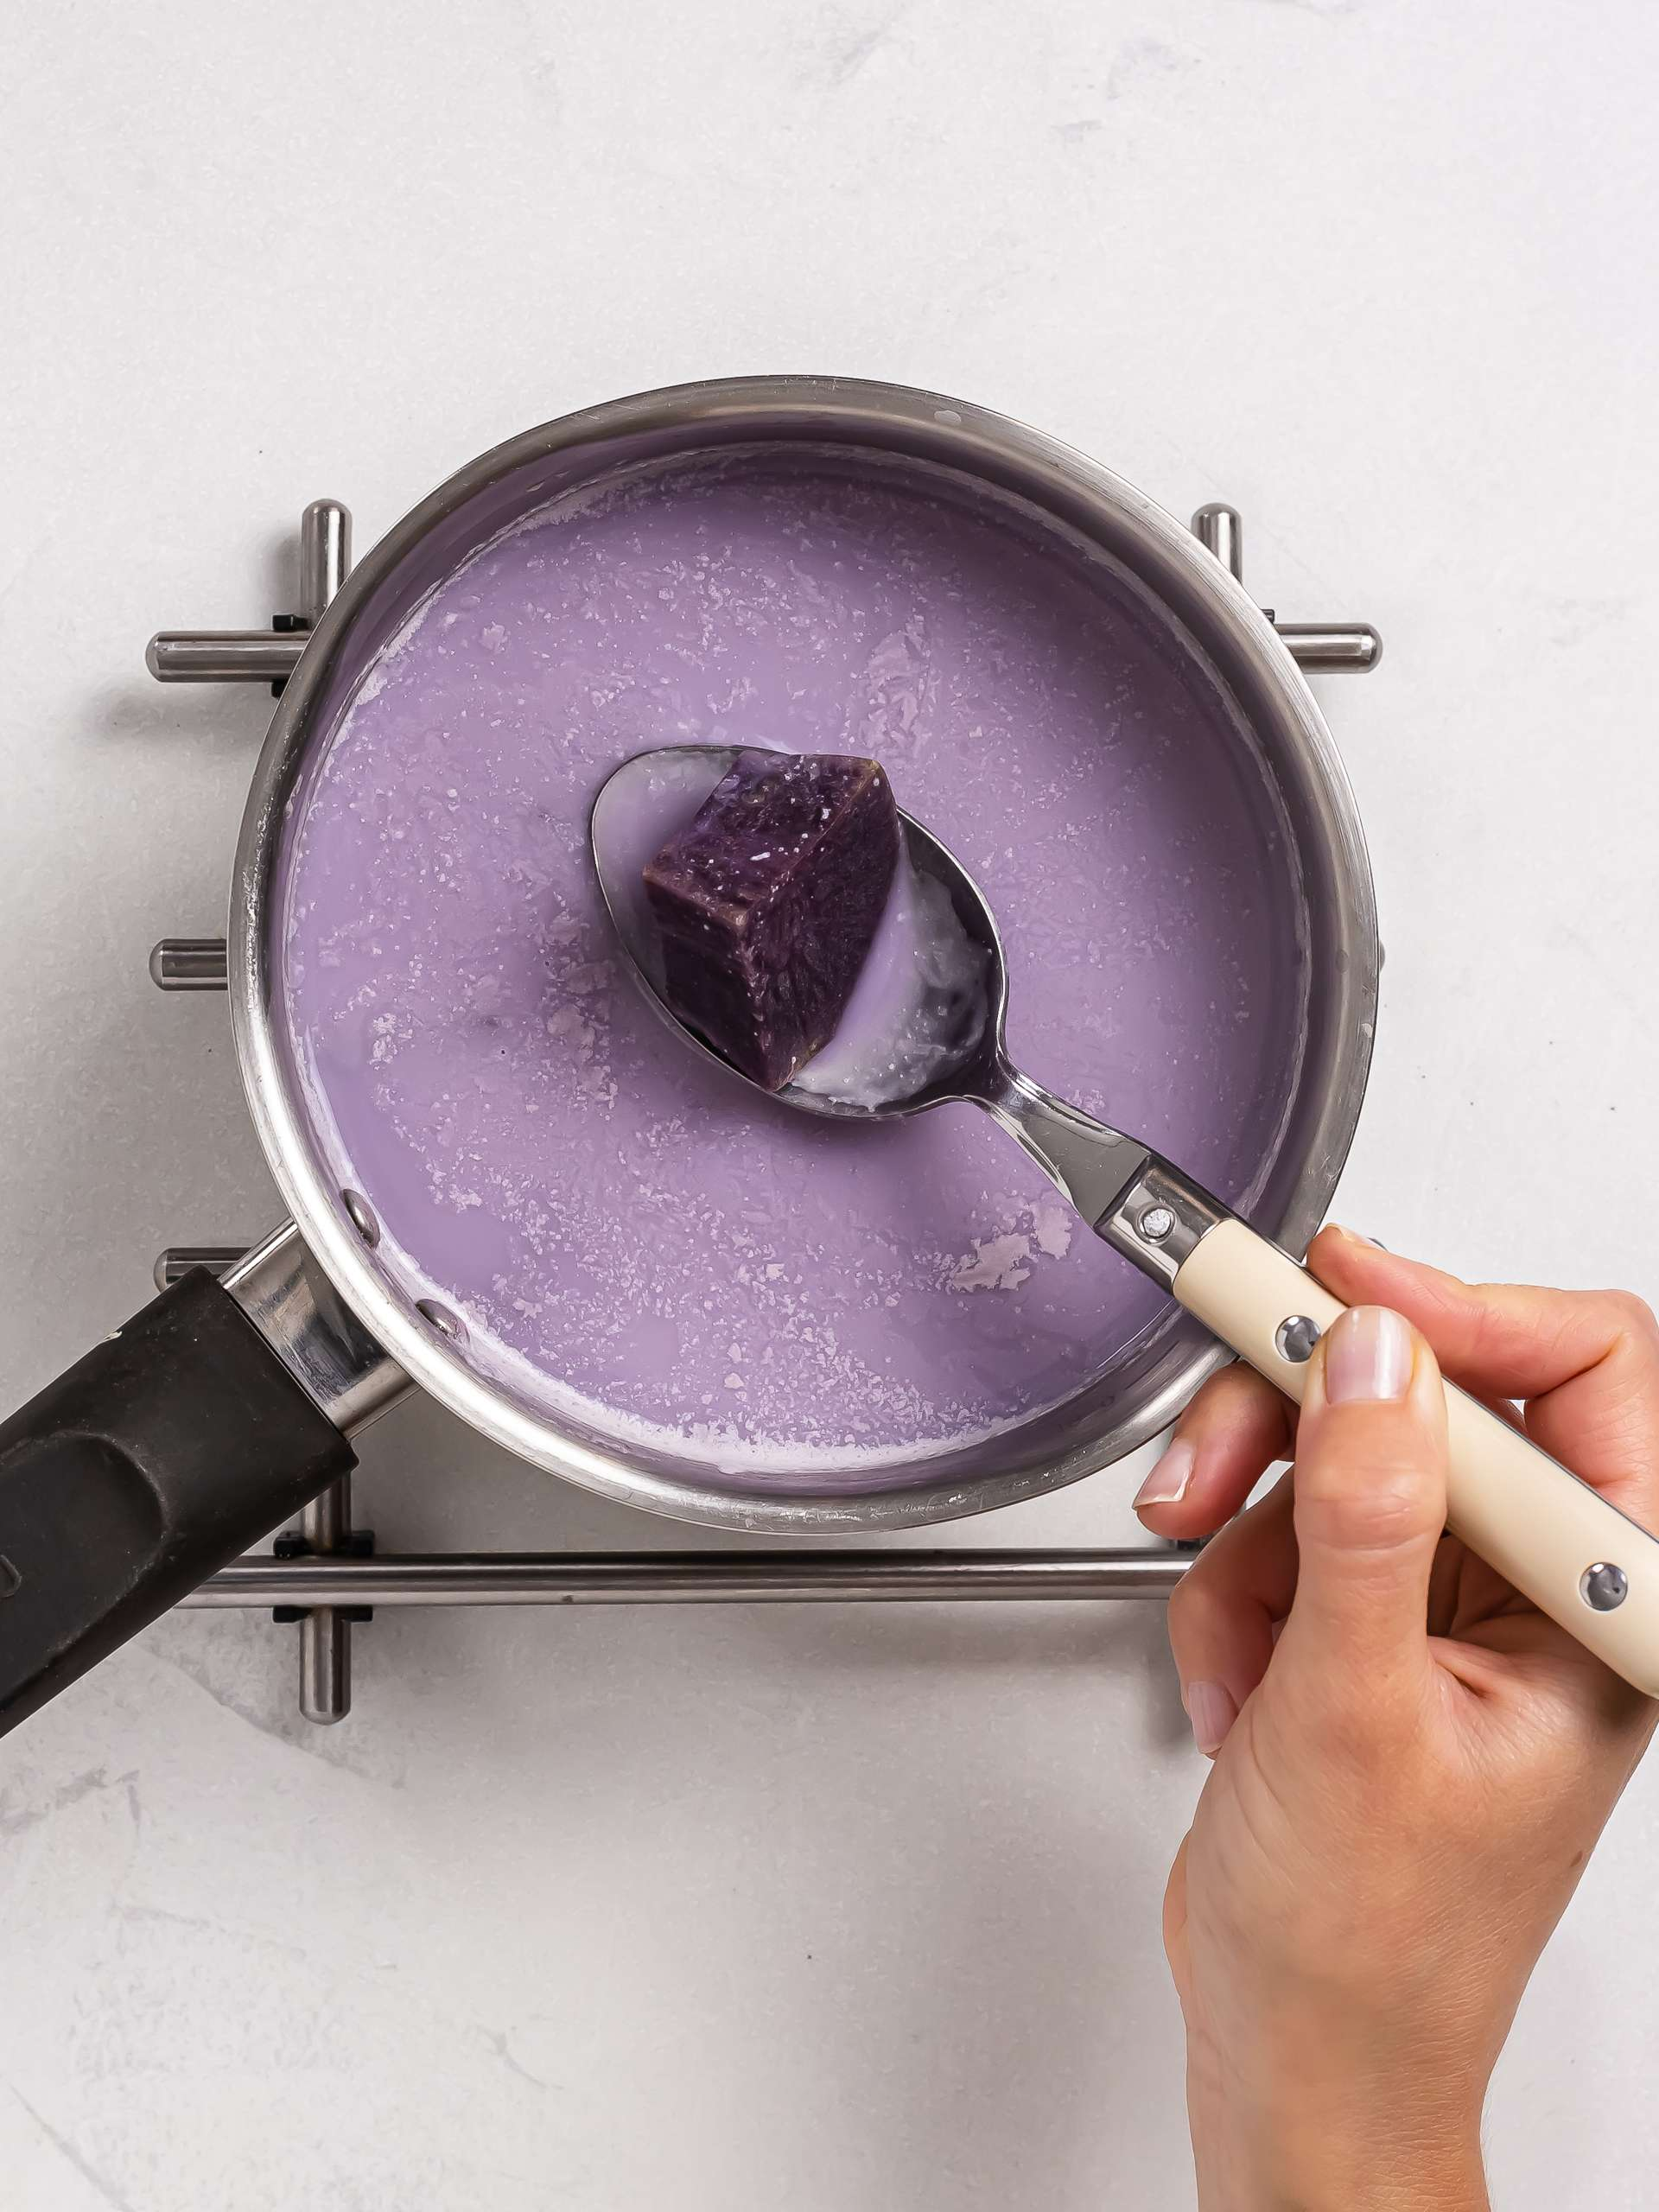 cooking ube with milk in a pot